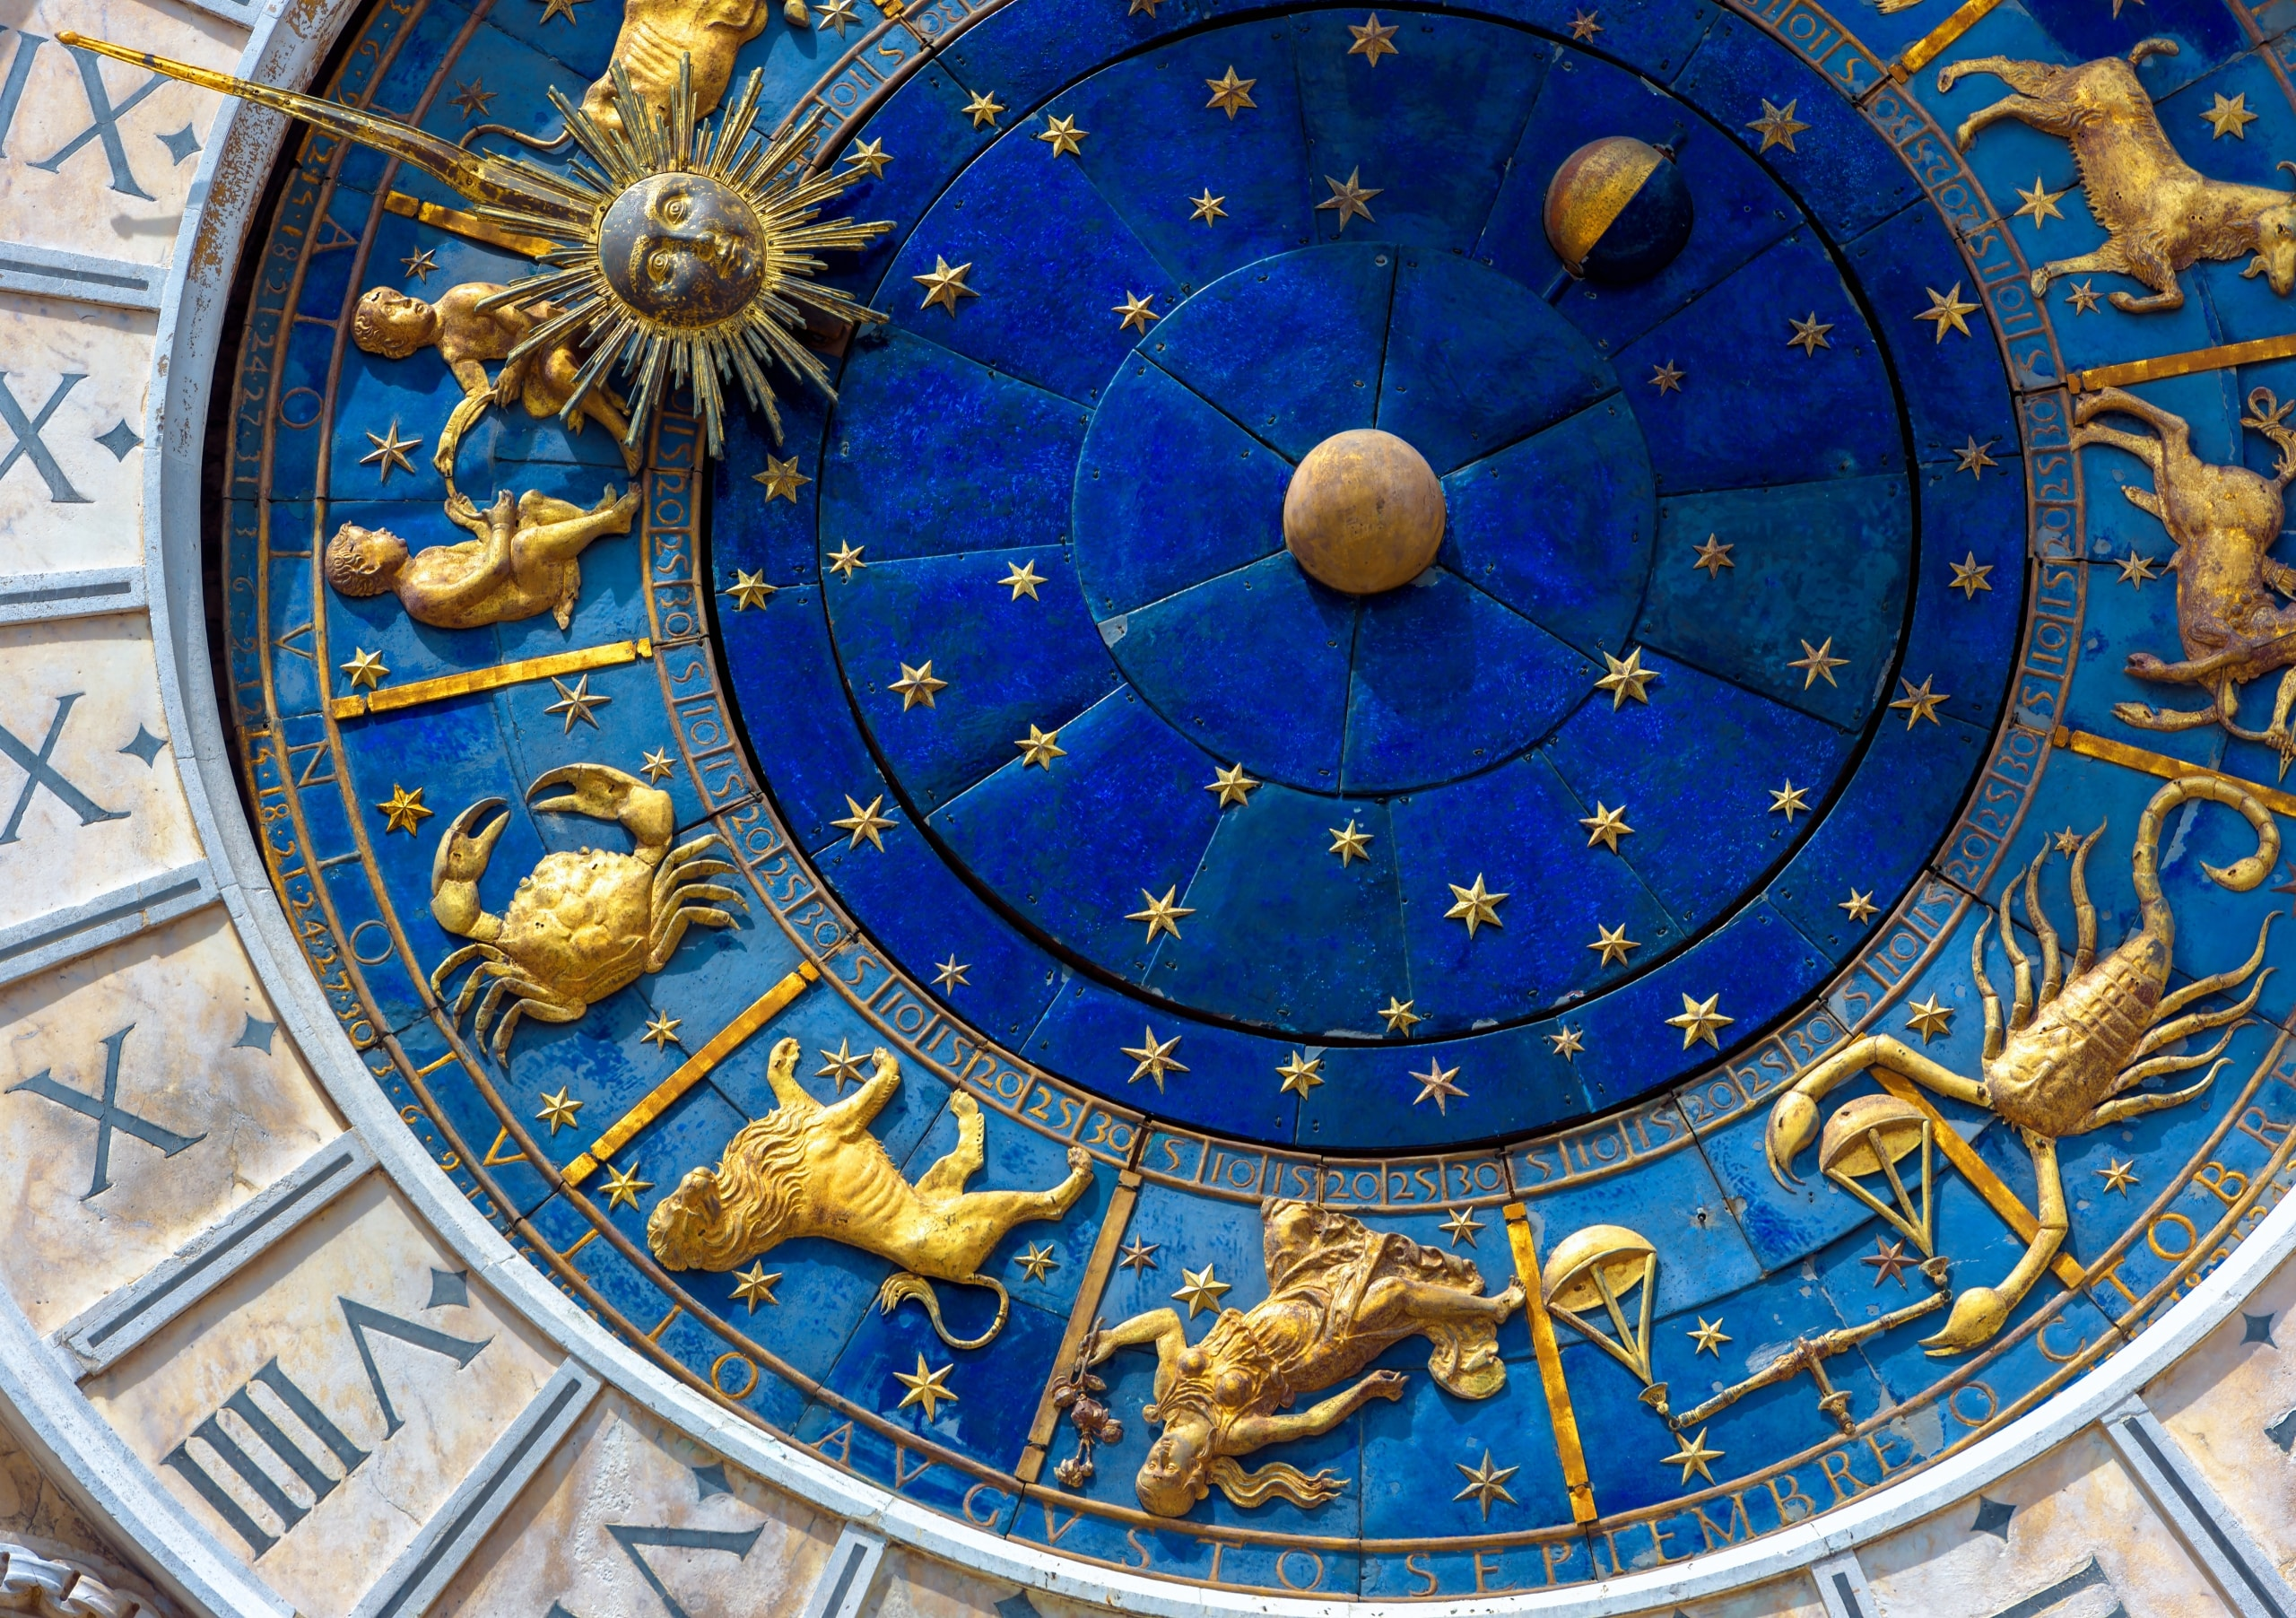 You've Got Mail, Virgo: Why Astrology in Email Marketing Is on the Ascendant